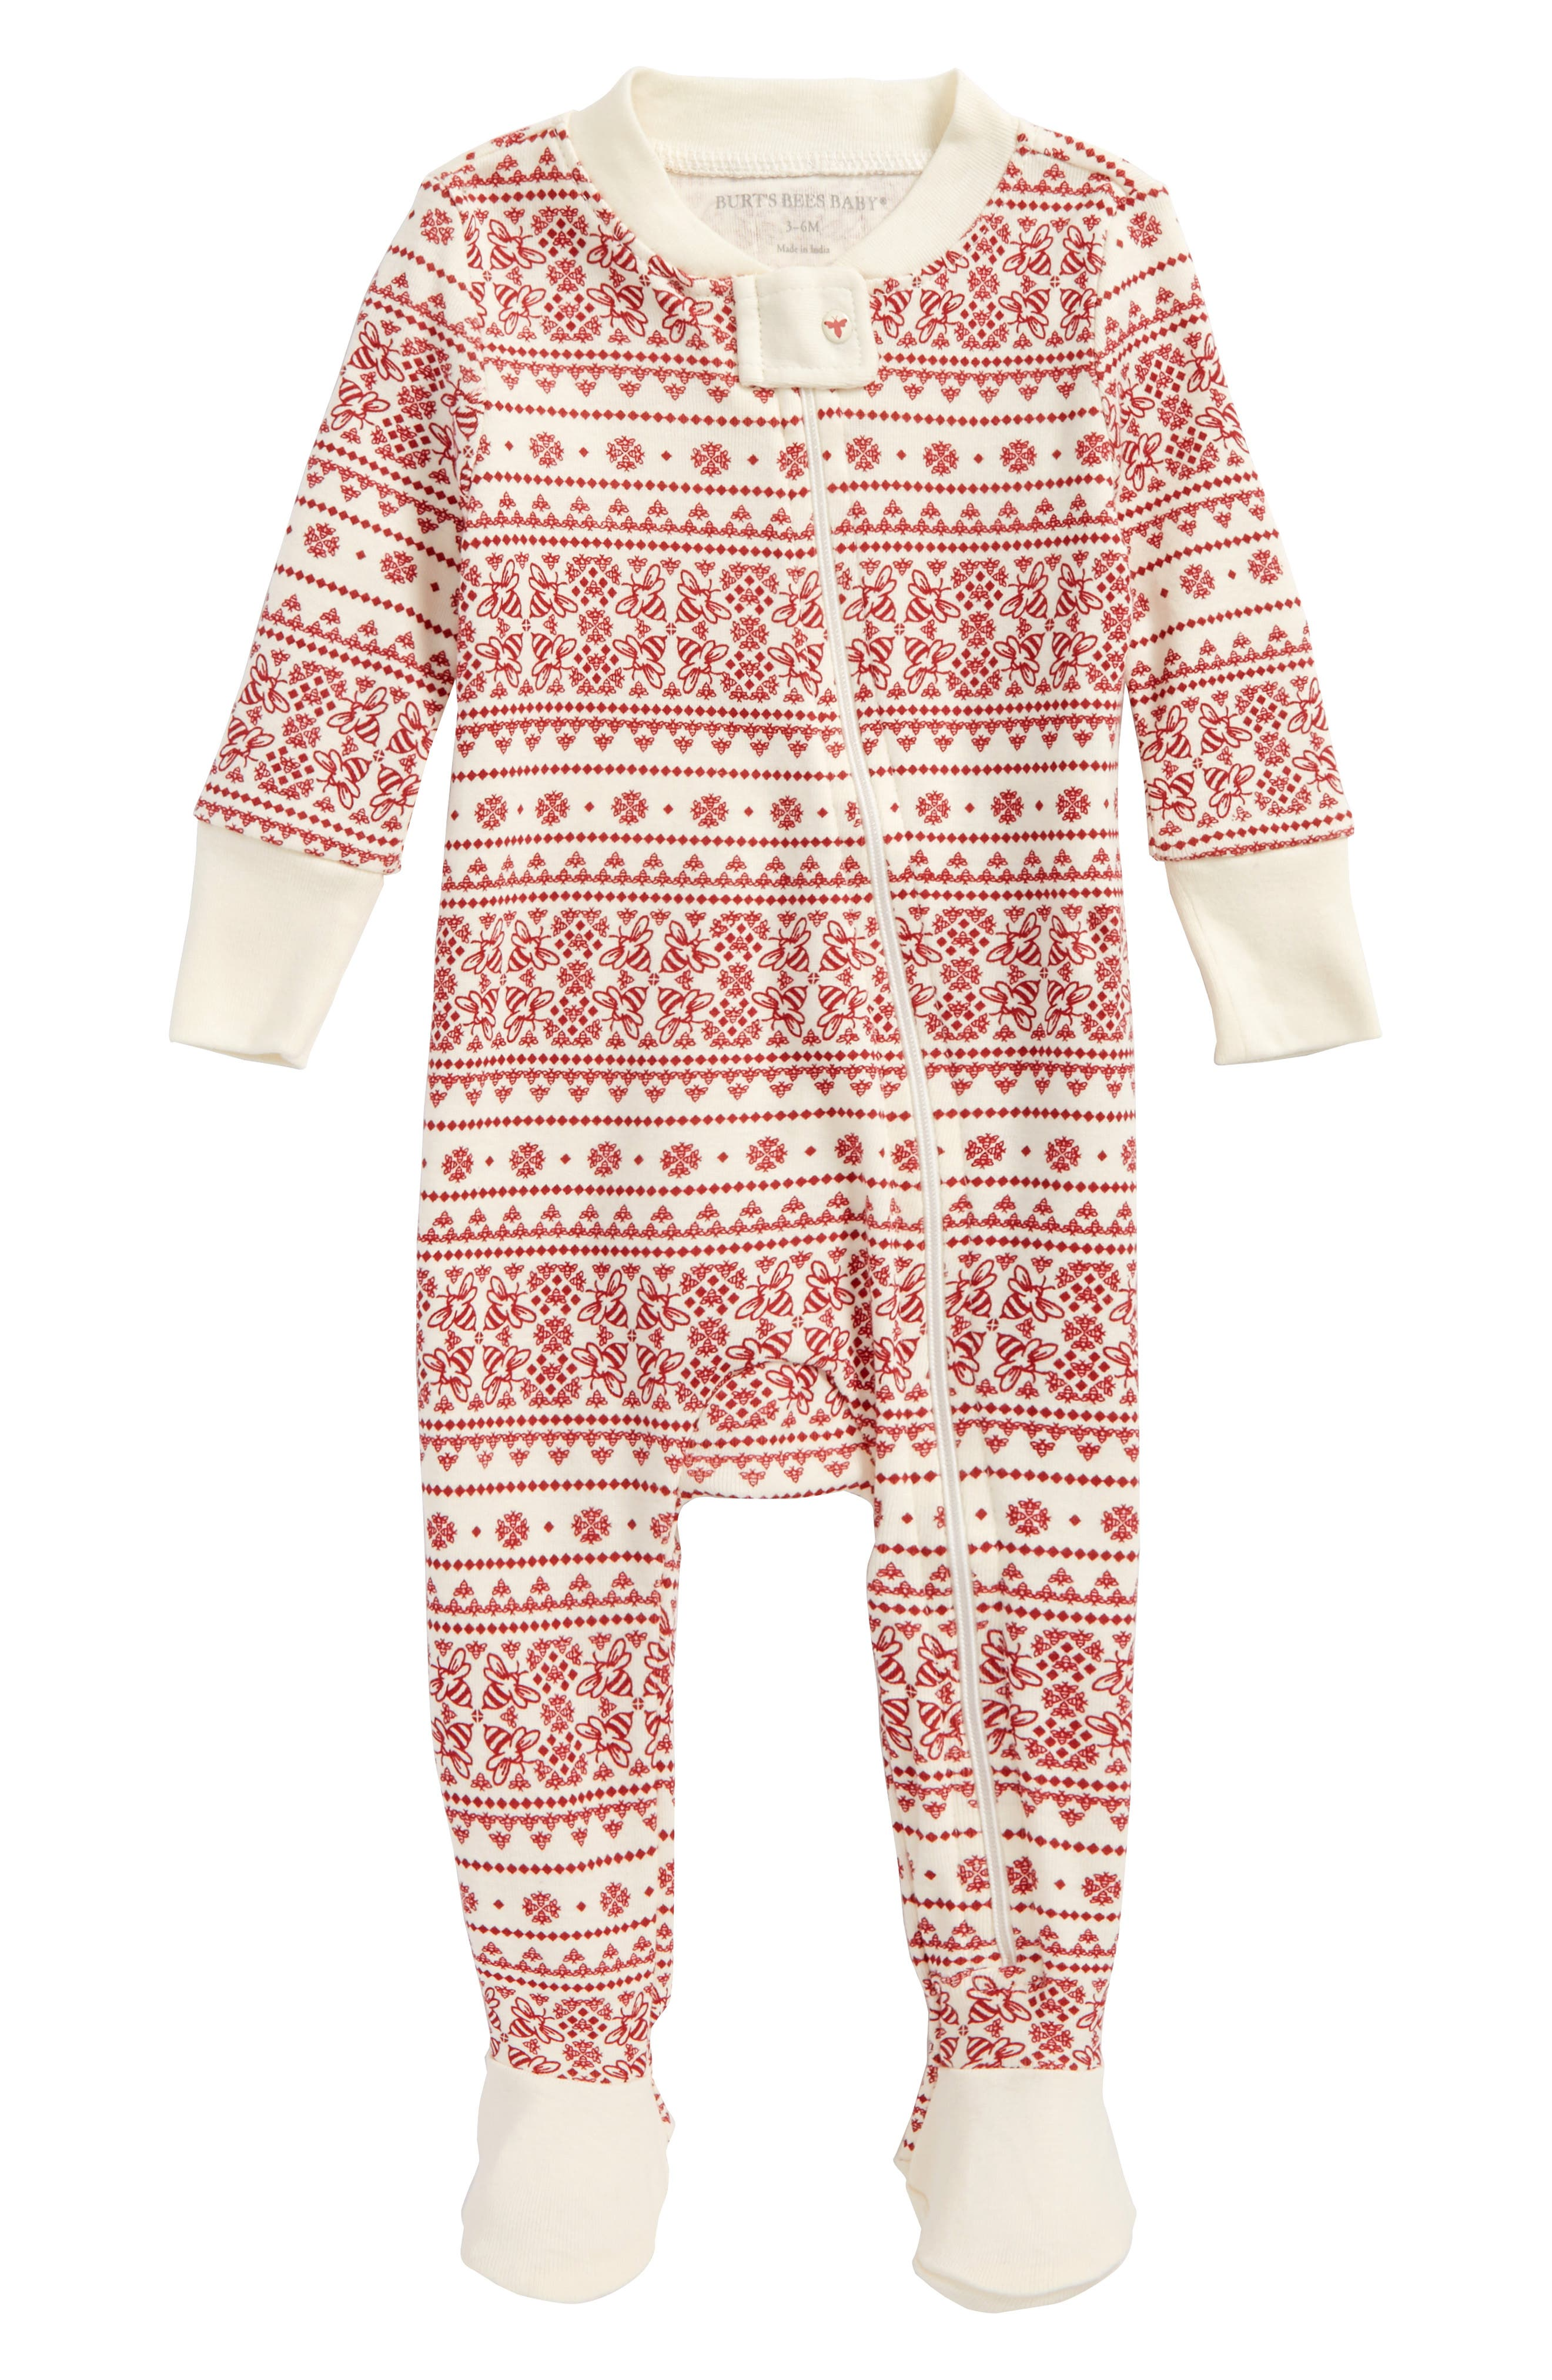 Main Image - Burt's Bees Baby Fair Isle Fitted One-Piece Footed Pajamas (Baby)